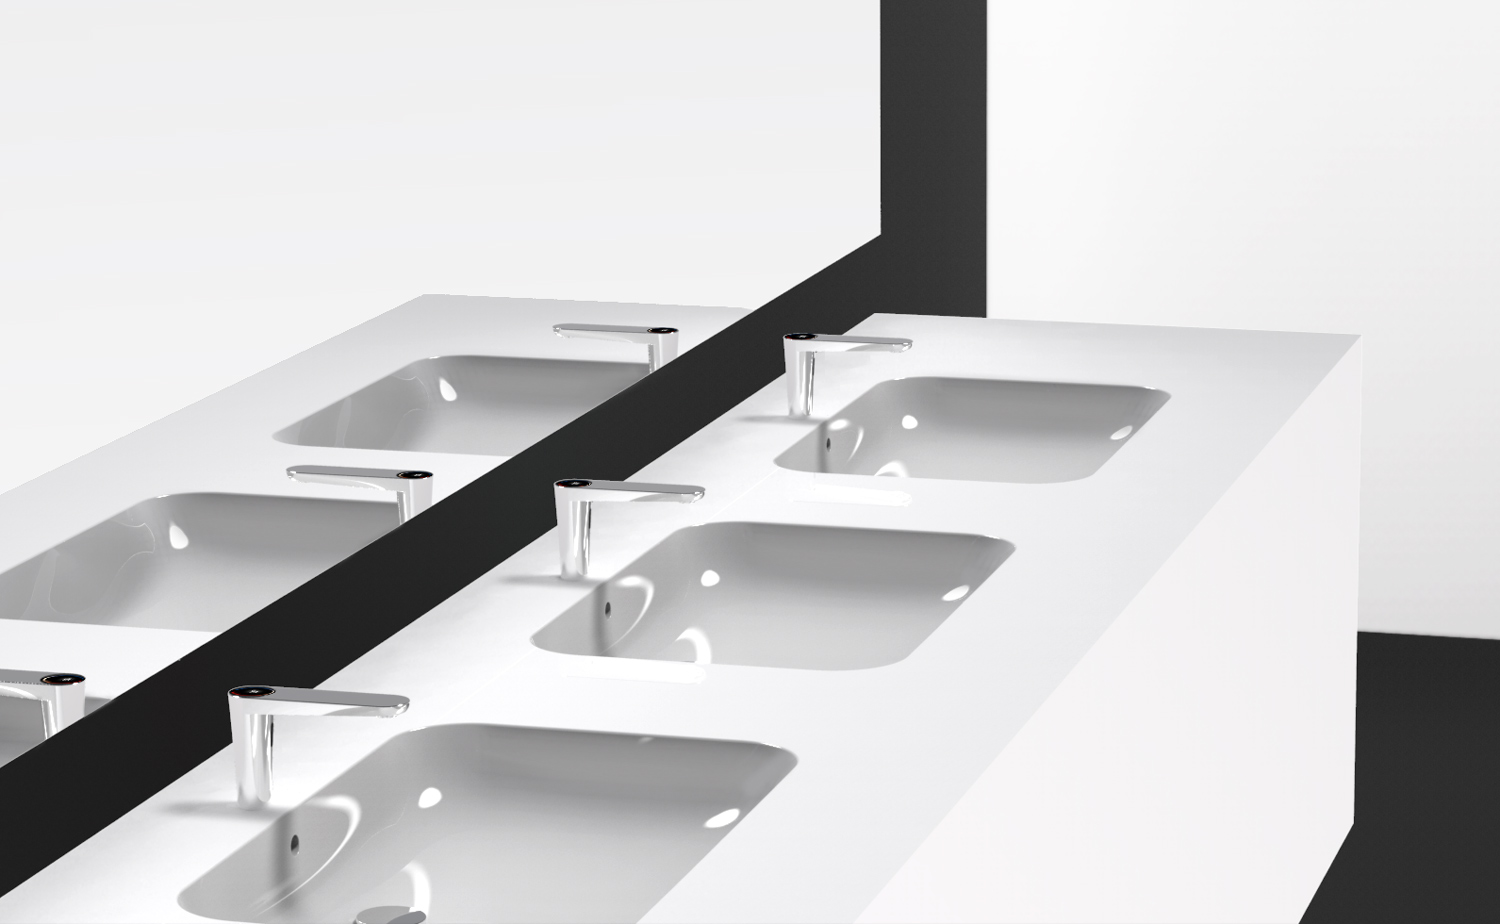 Smart_tap_design_public_bathroom_product_design